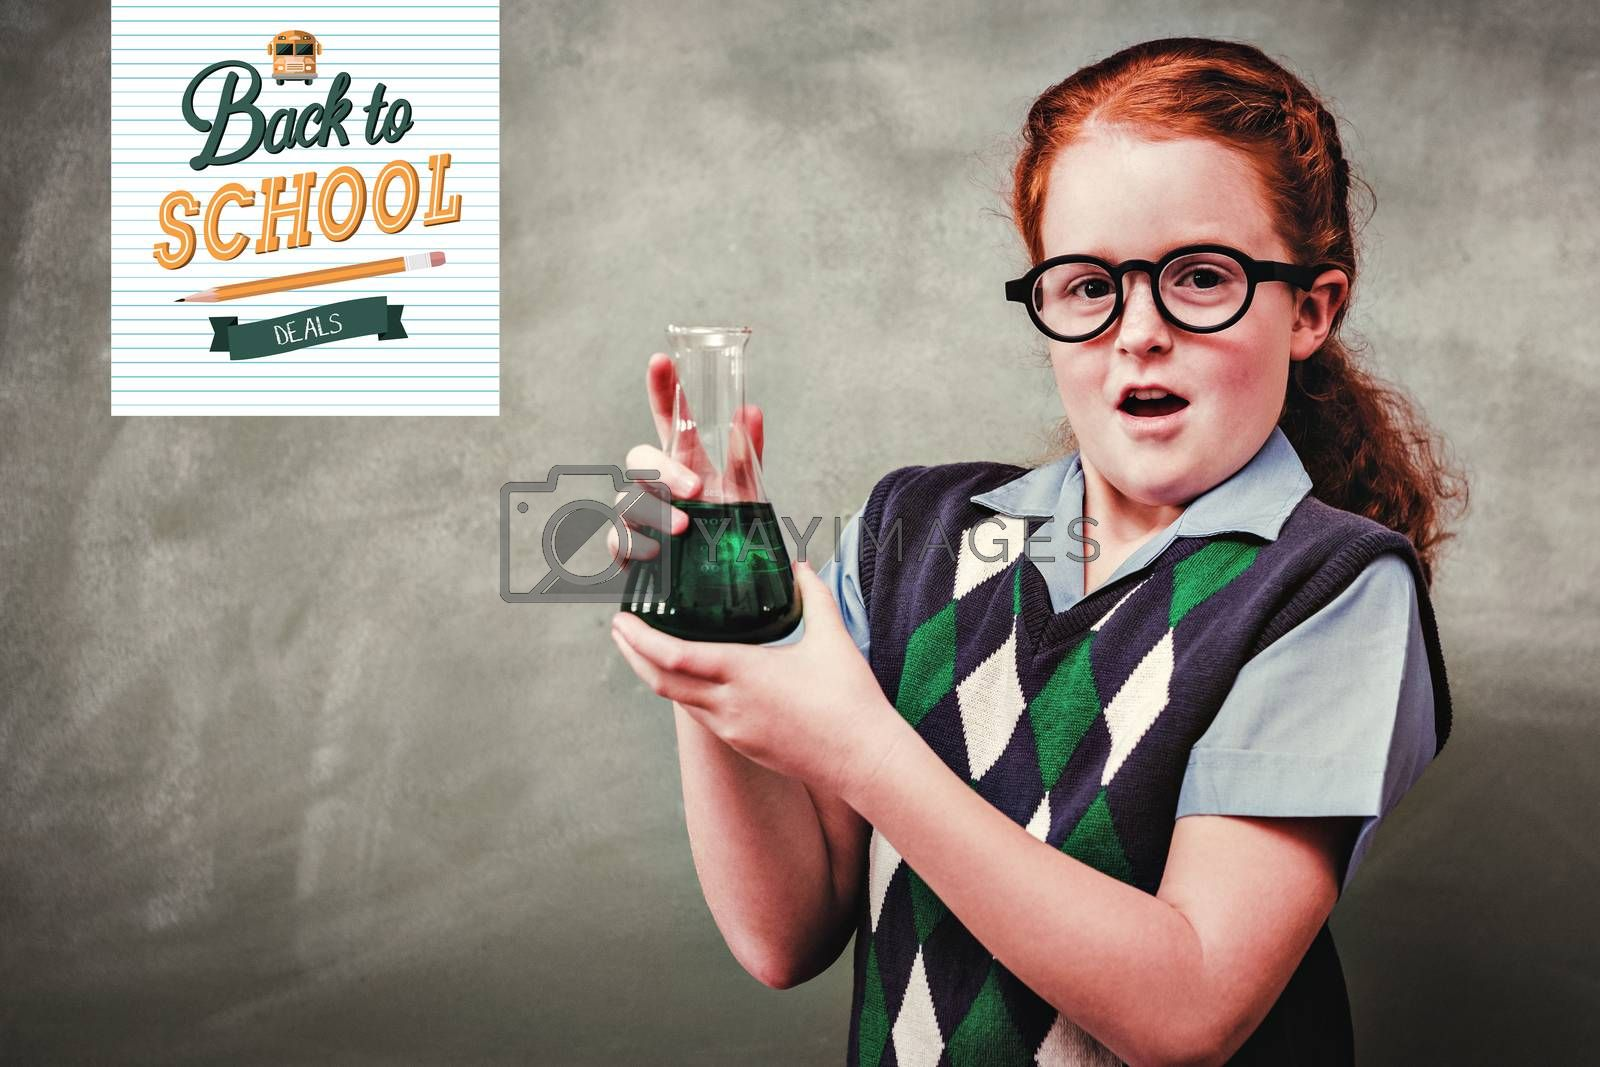 back to school against girl holding conical flask in classroom